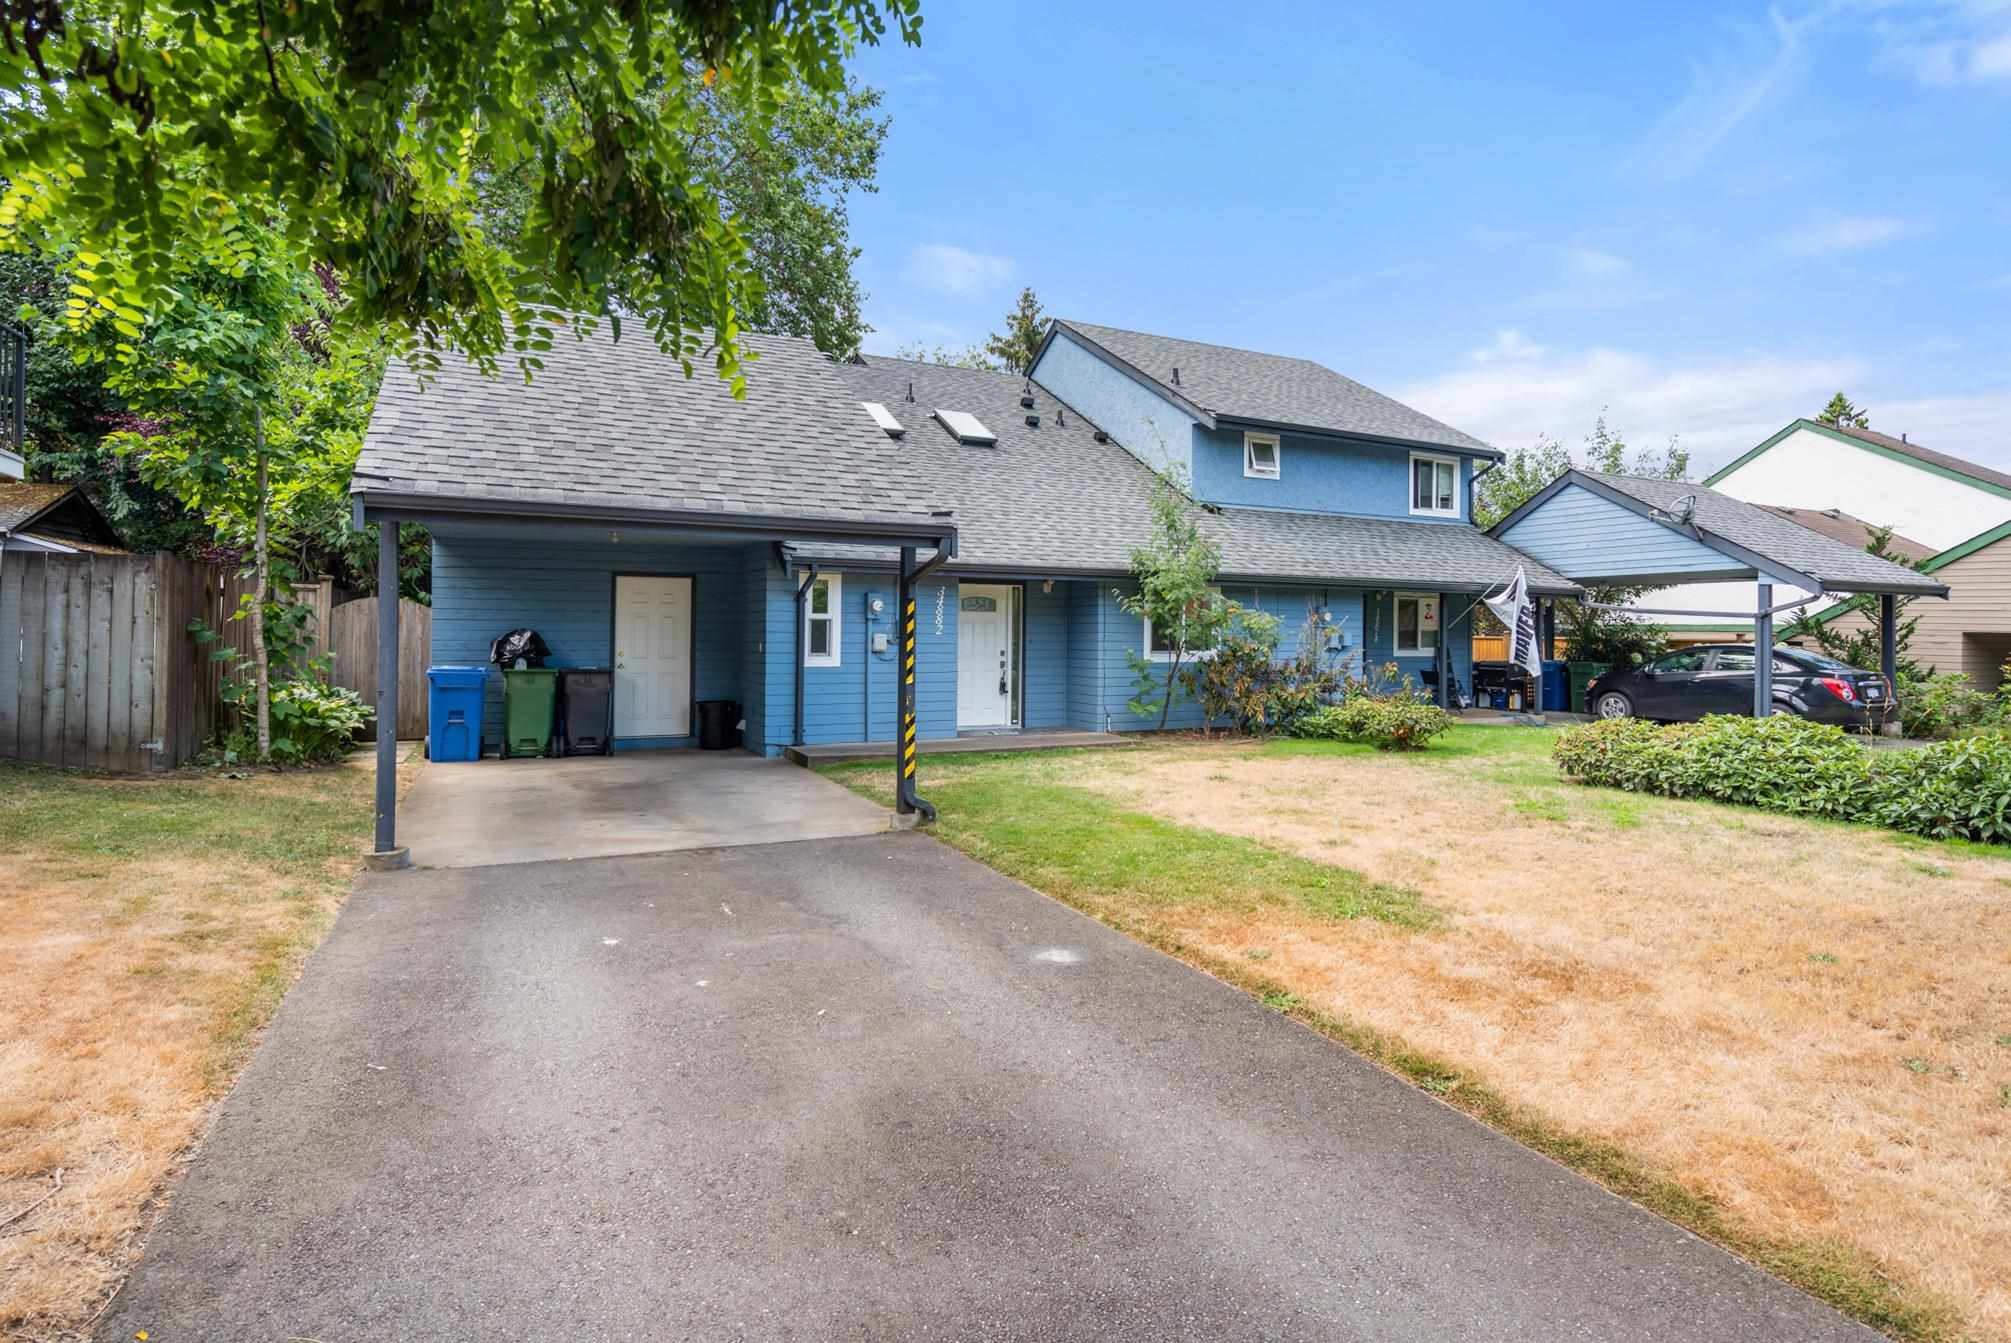 34882 GLENN MOUNTAIN DRIVE - Abbotsford East 1/2 Duplex for sale, 3 Bedrooms (R2603098) - #1